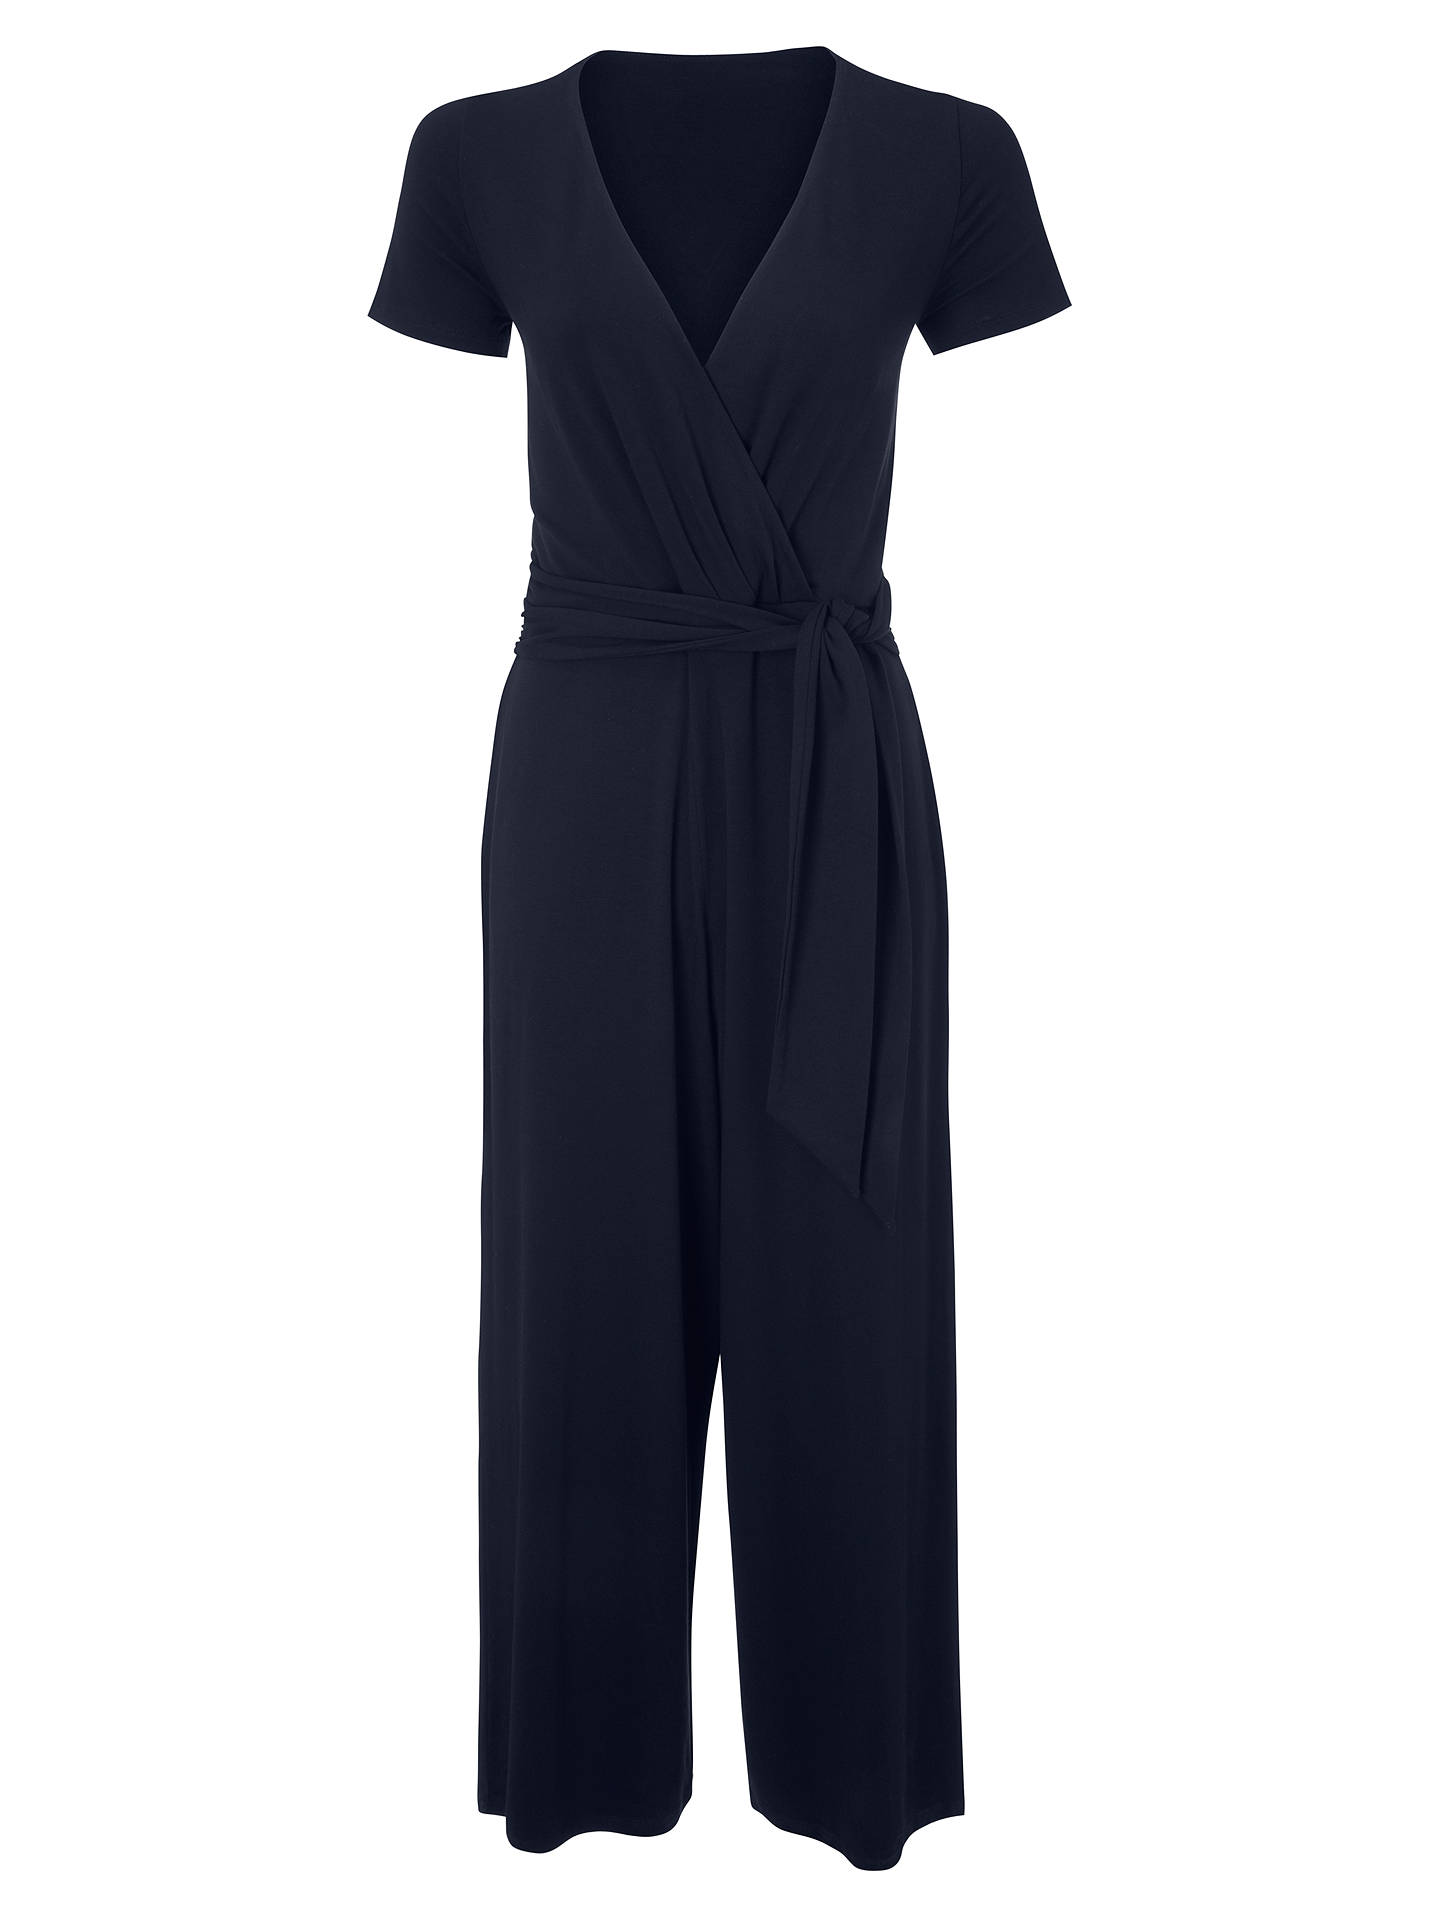 BuyBoden Isla Wrap Over Tie Waist Jumpsuit, Navy, 8 Online at johnlewis.com